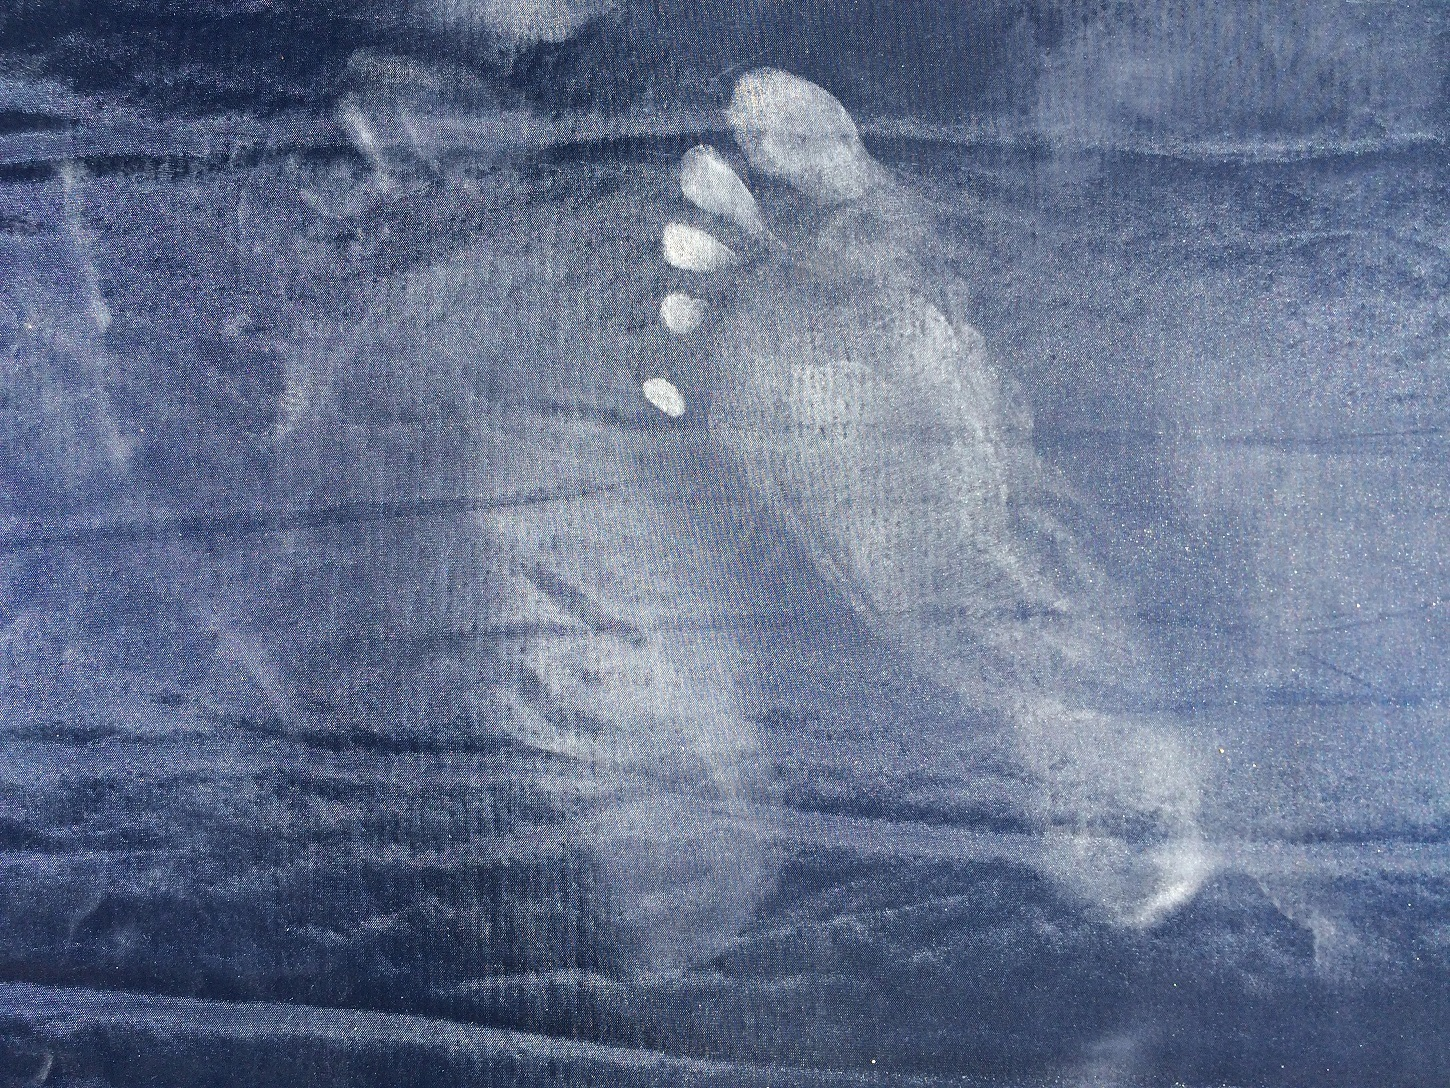 Dusty footprint on textile background